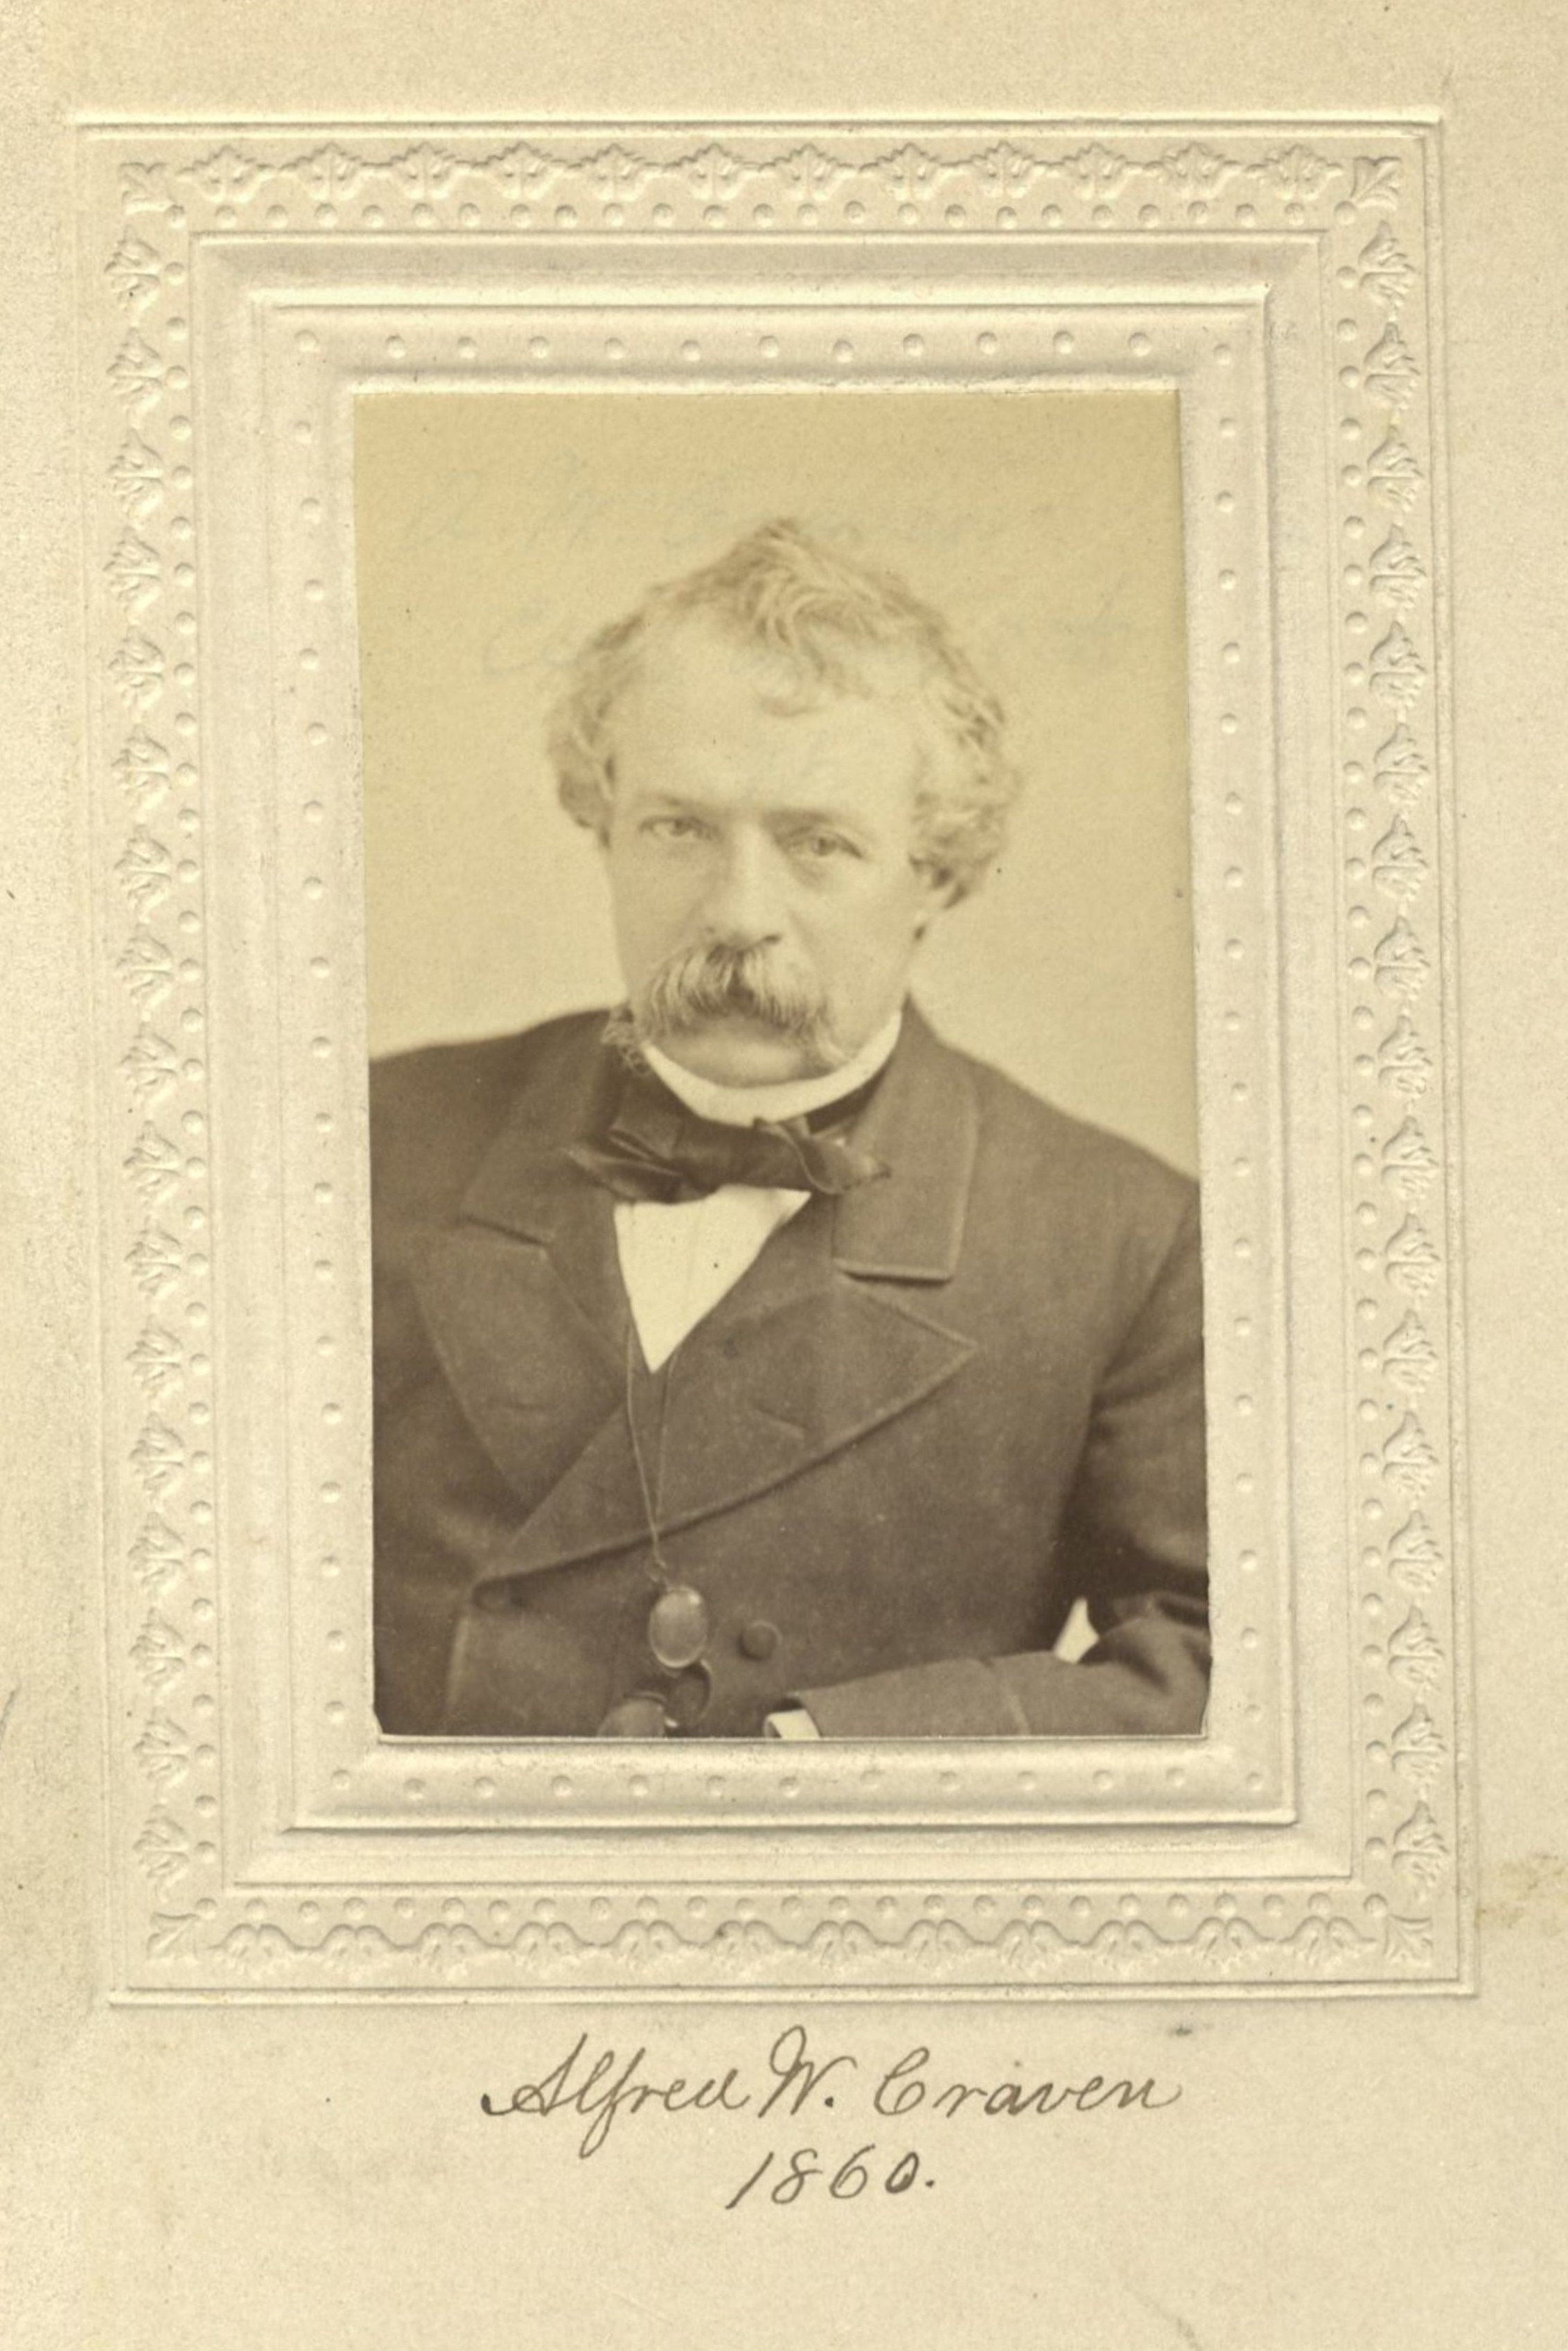 Member portrait of Alfred W. Craven